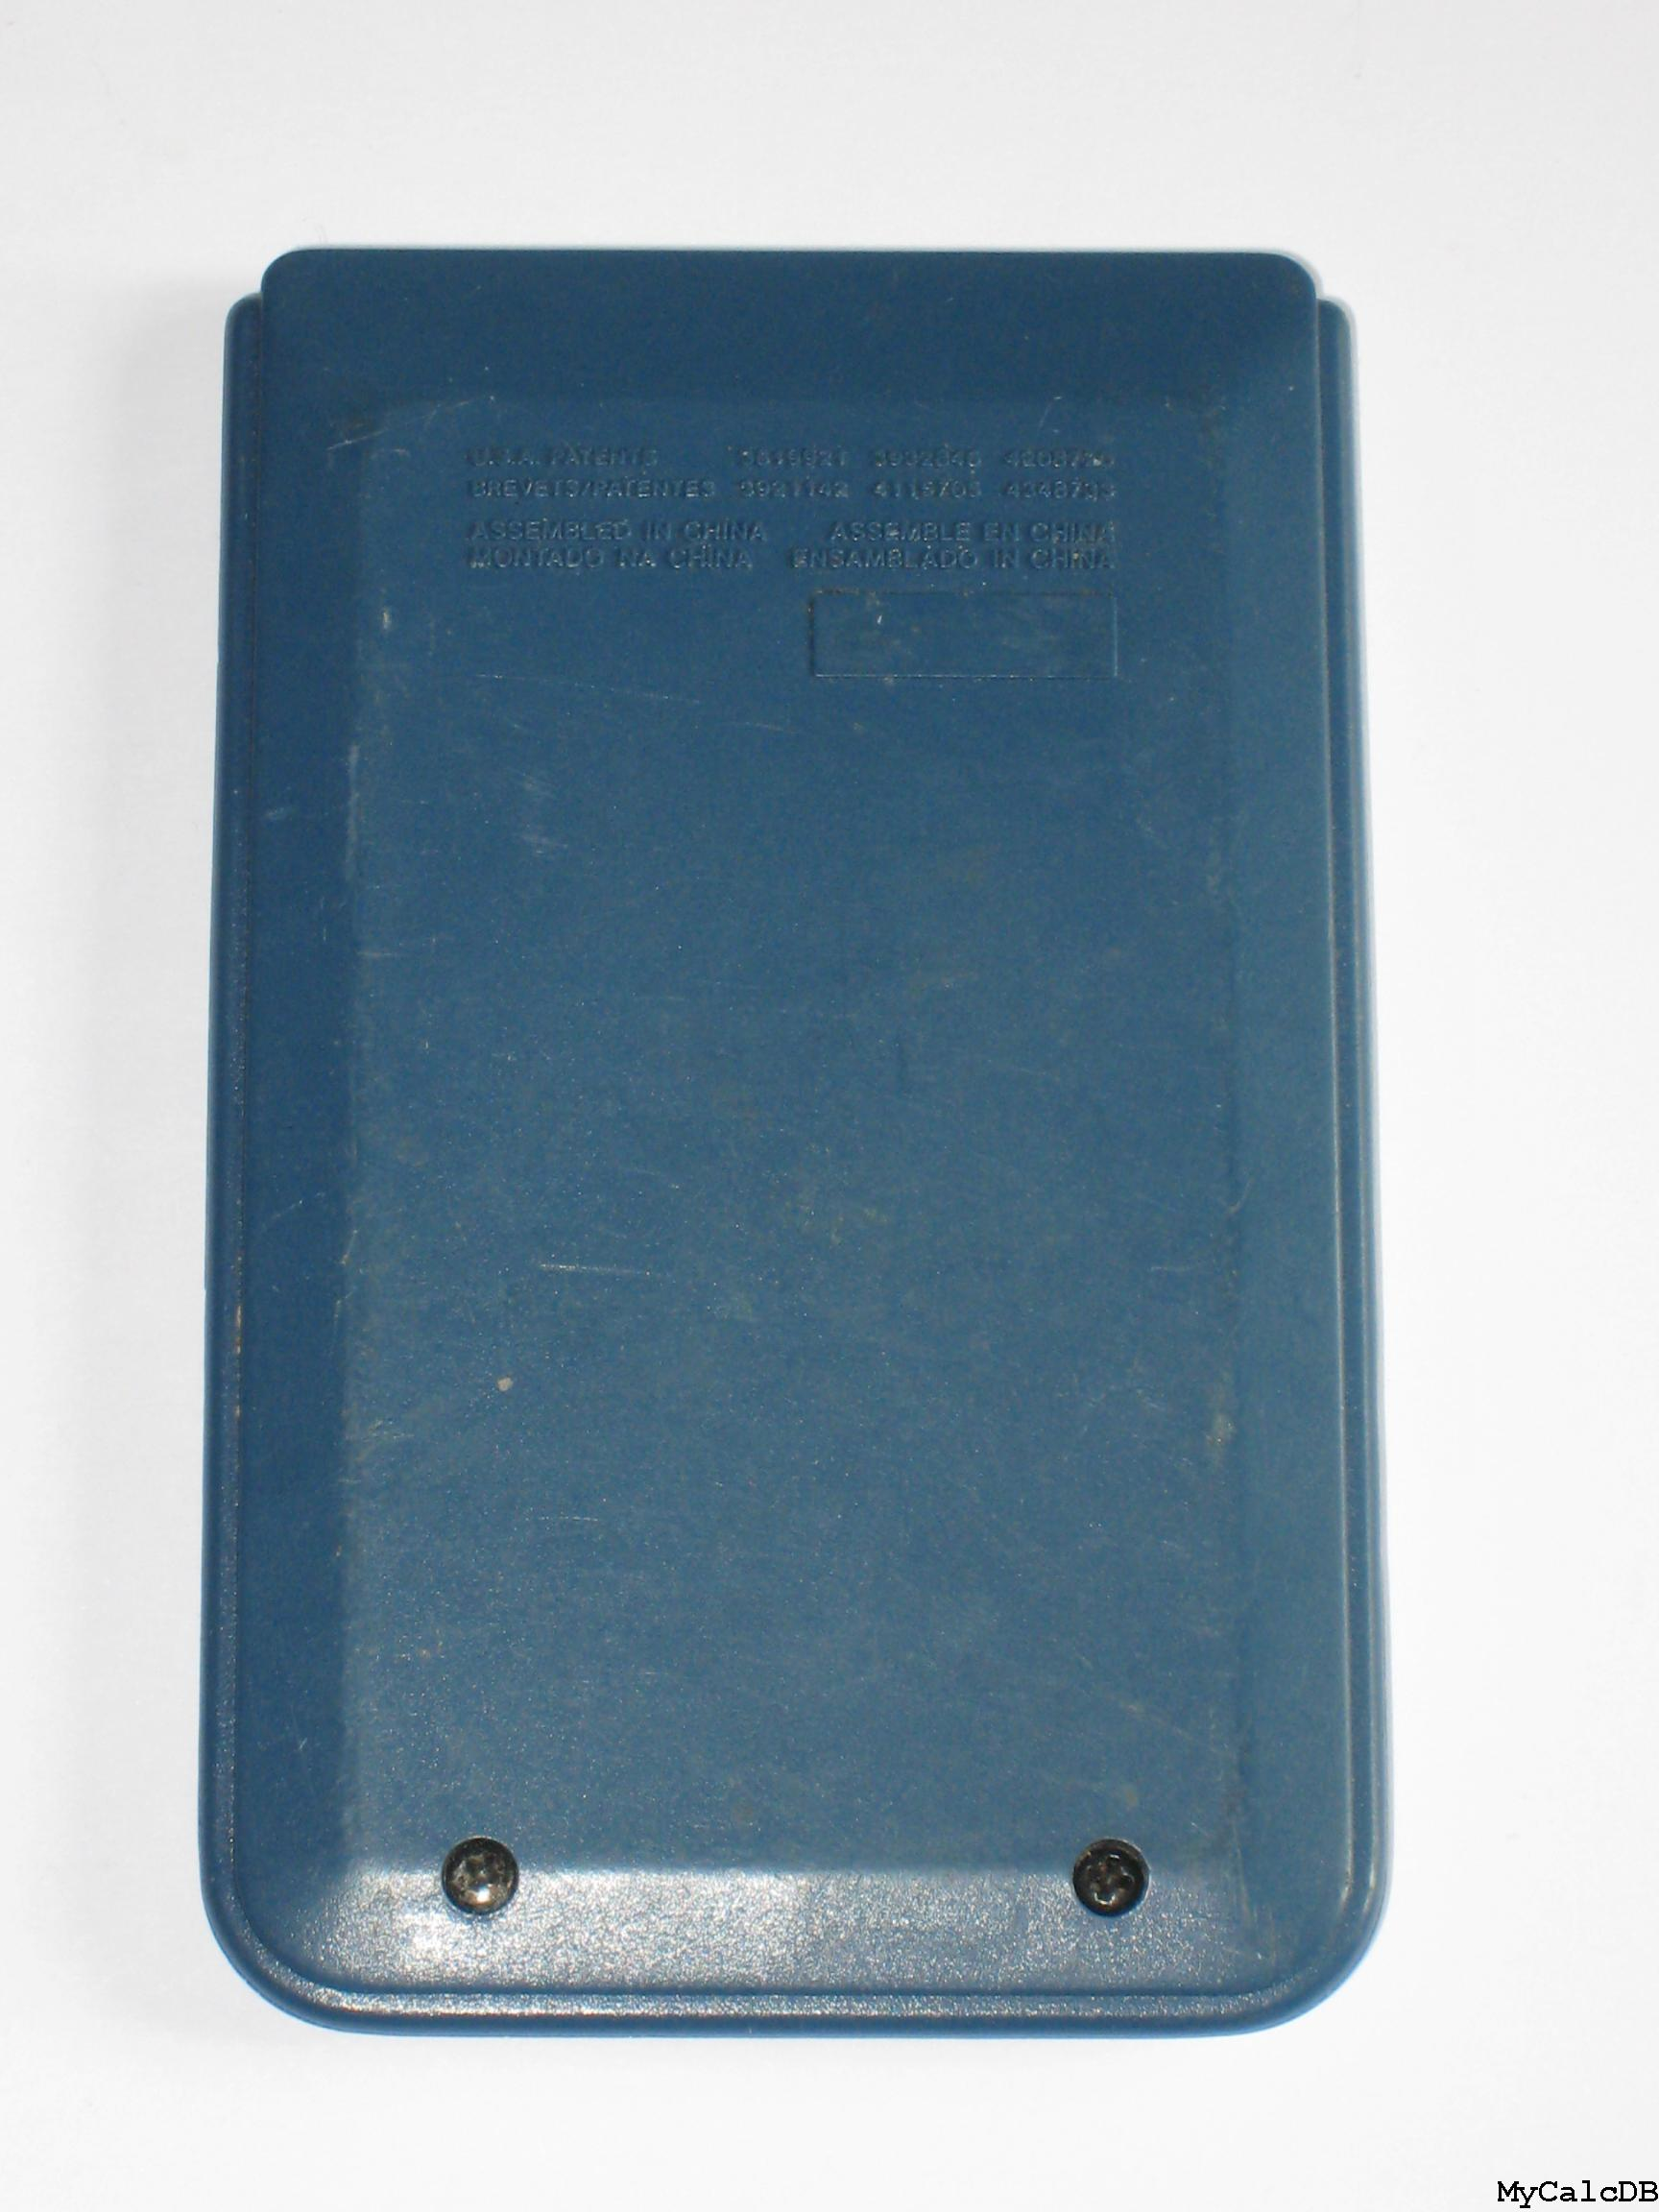 Texas Instruments TI 503